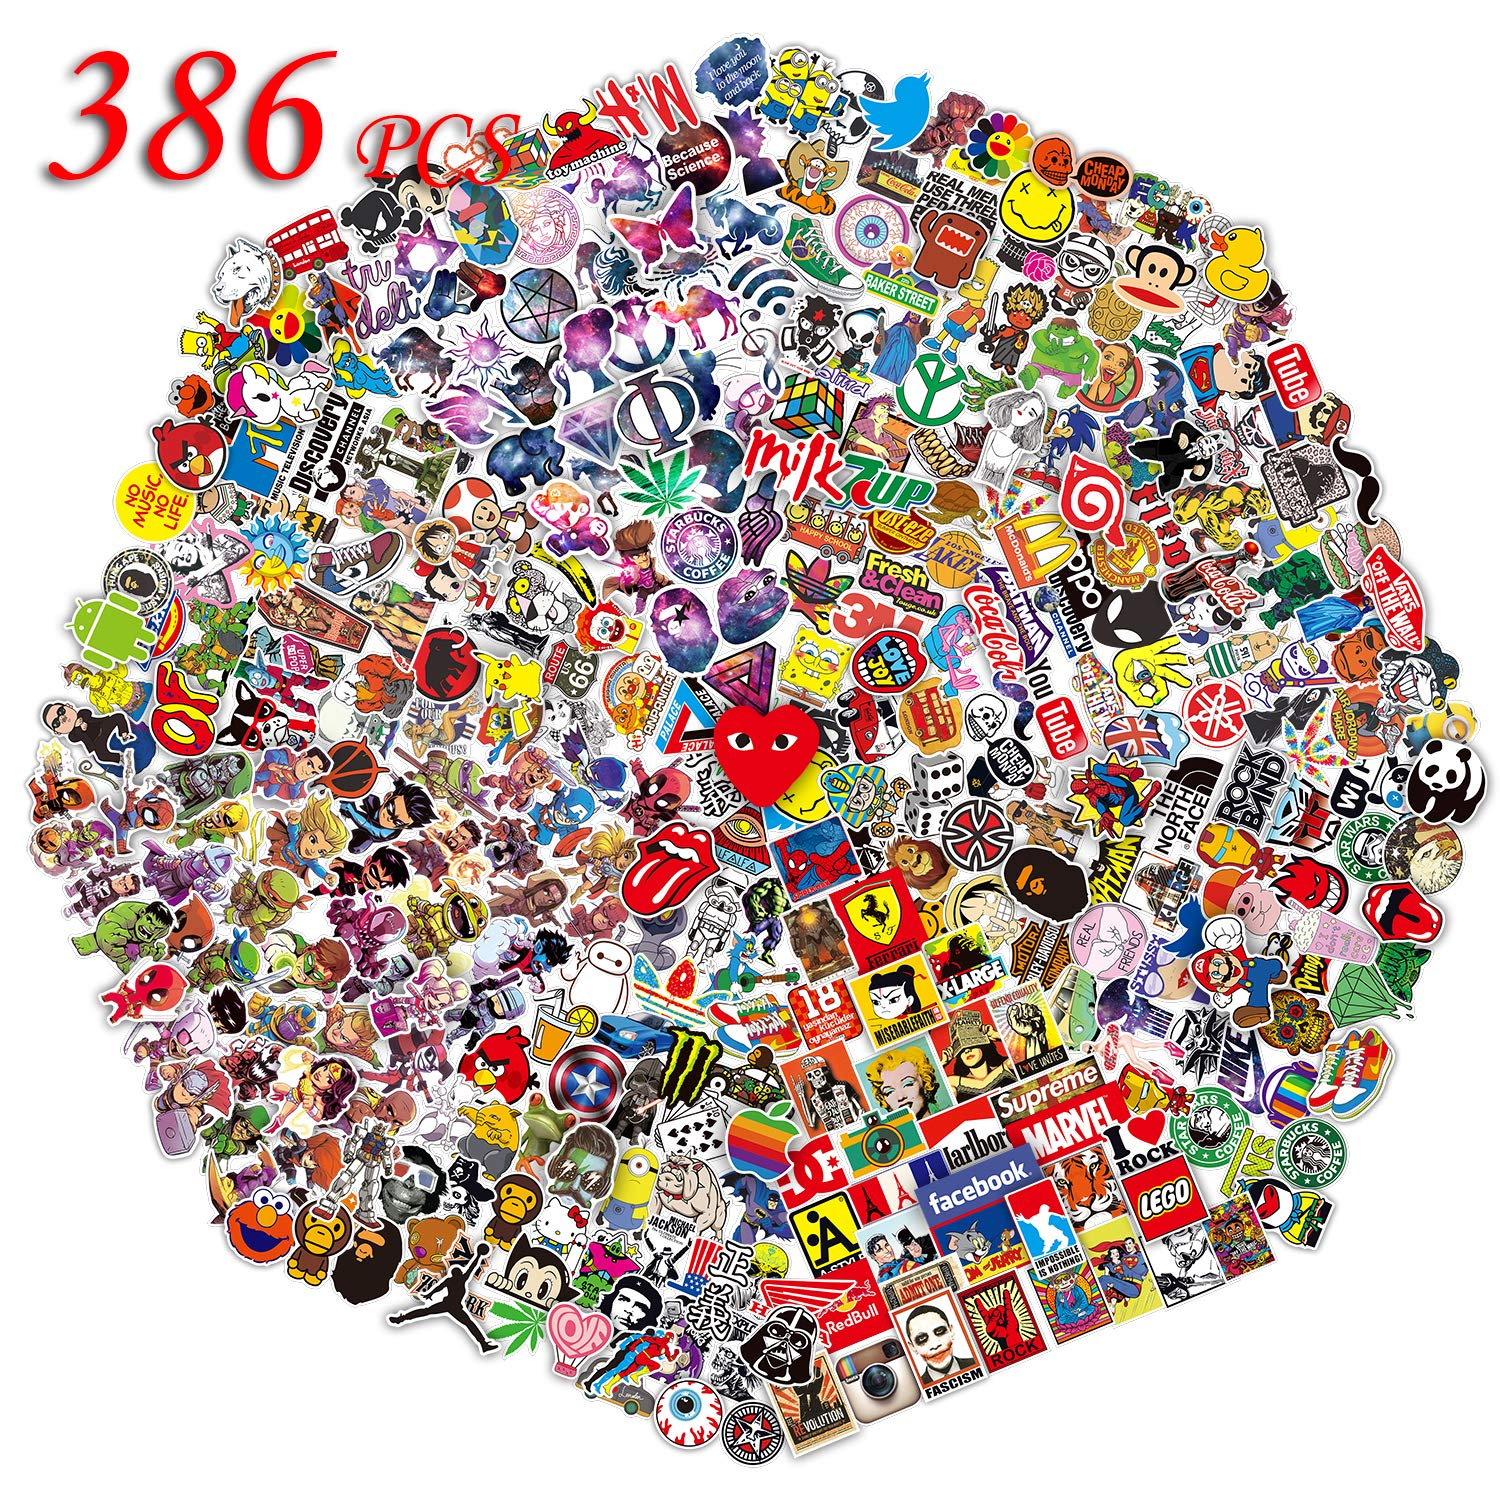 QWDDECO Sticker Pack (386-pcs) Vinyl Kawaii Decal Stickers for Laptop,Luggage,Wall,Skateboard,Bike,PS4,Xbox one,Iphone,Car-Party Favors for Kids,Adults,Teens,Boys and Girls-Graffiti Decals -Waterproof